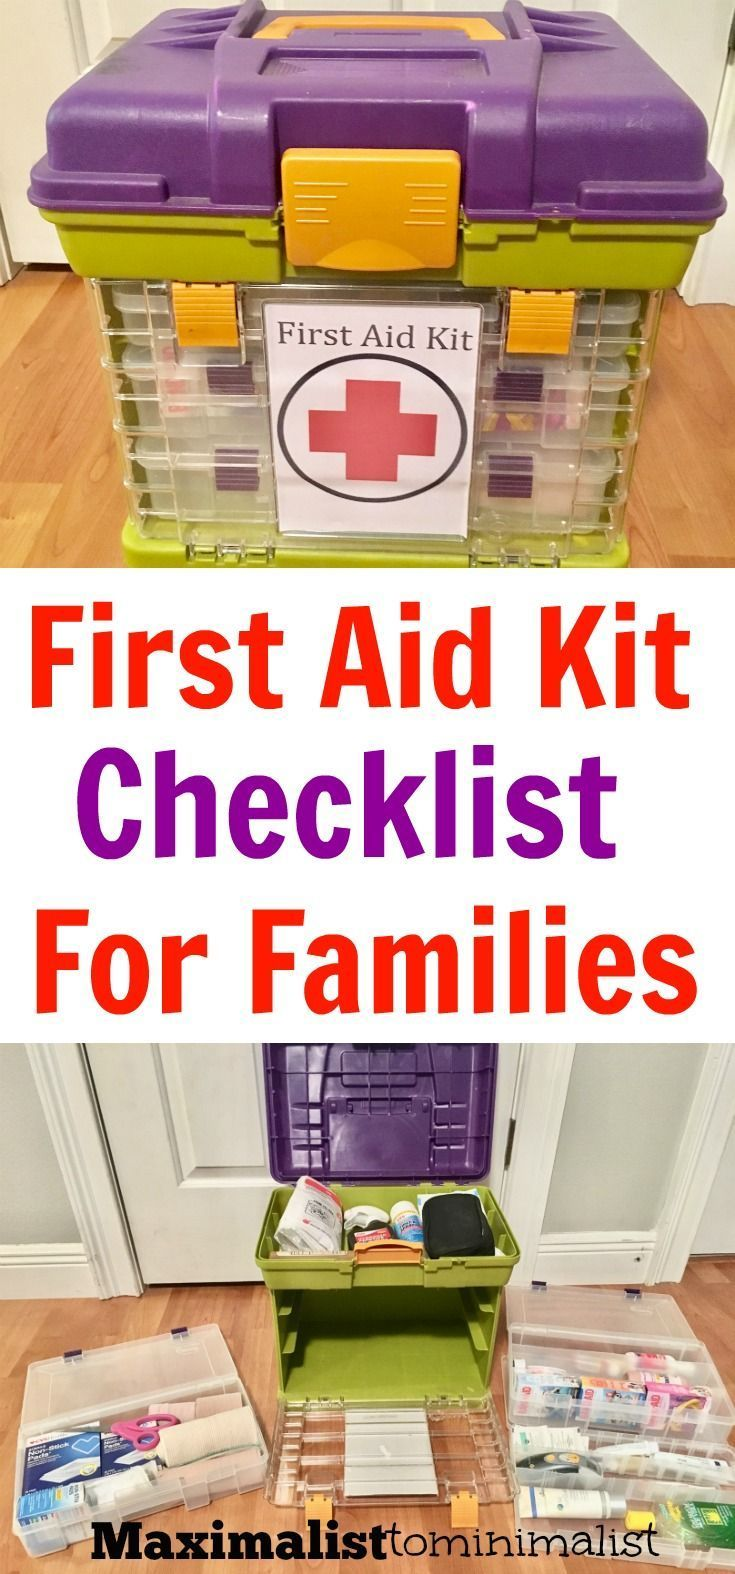 First Aid Kit Checklist for Families to Use When Traveling